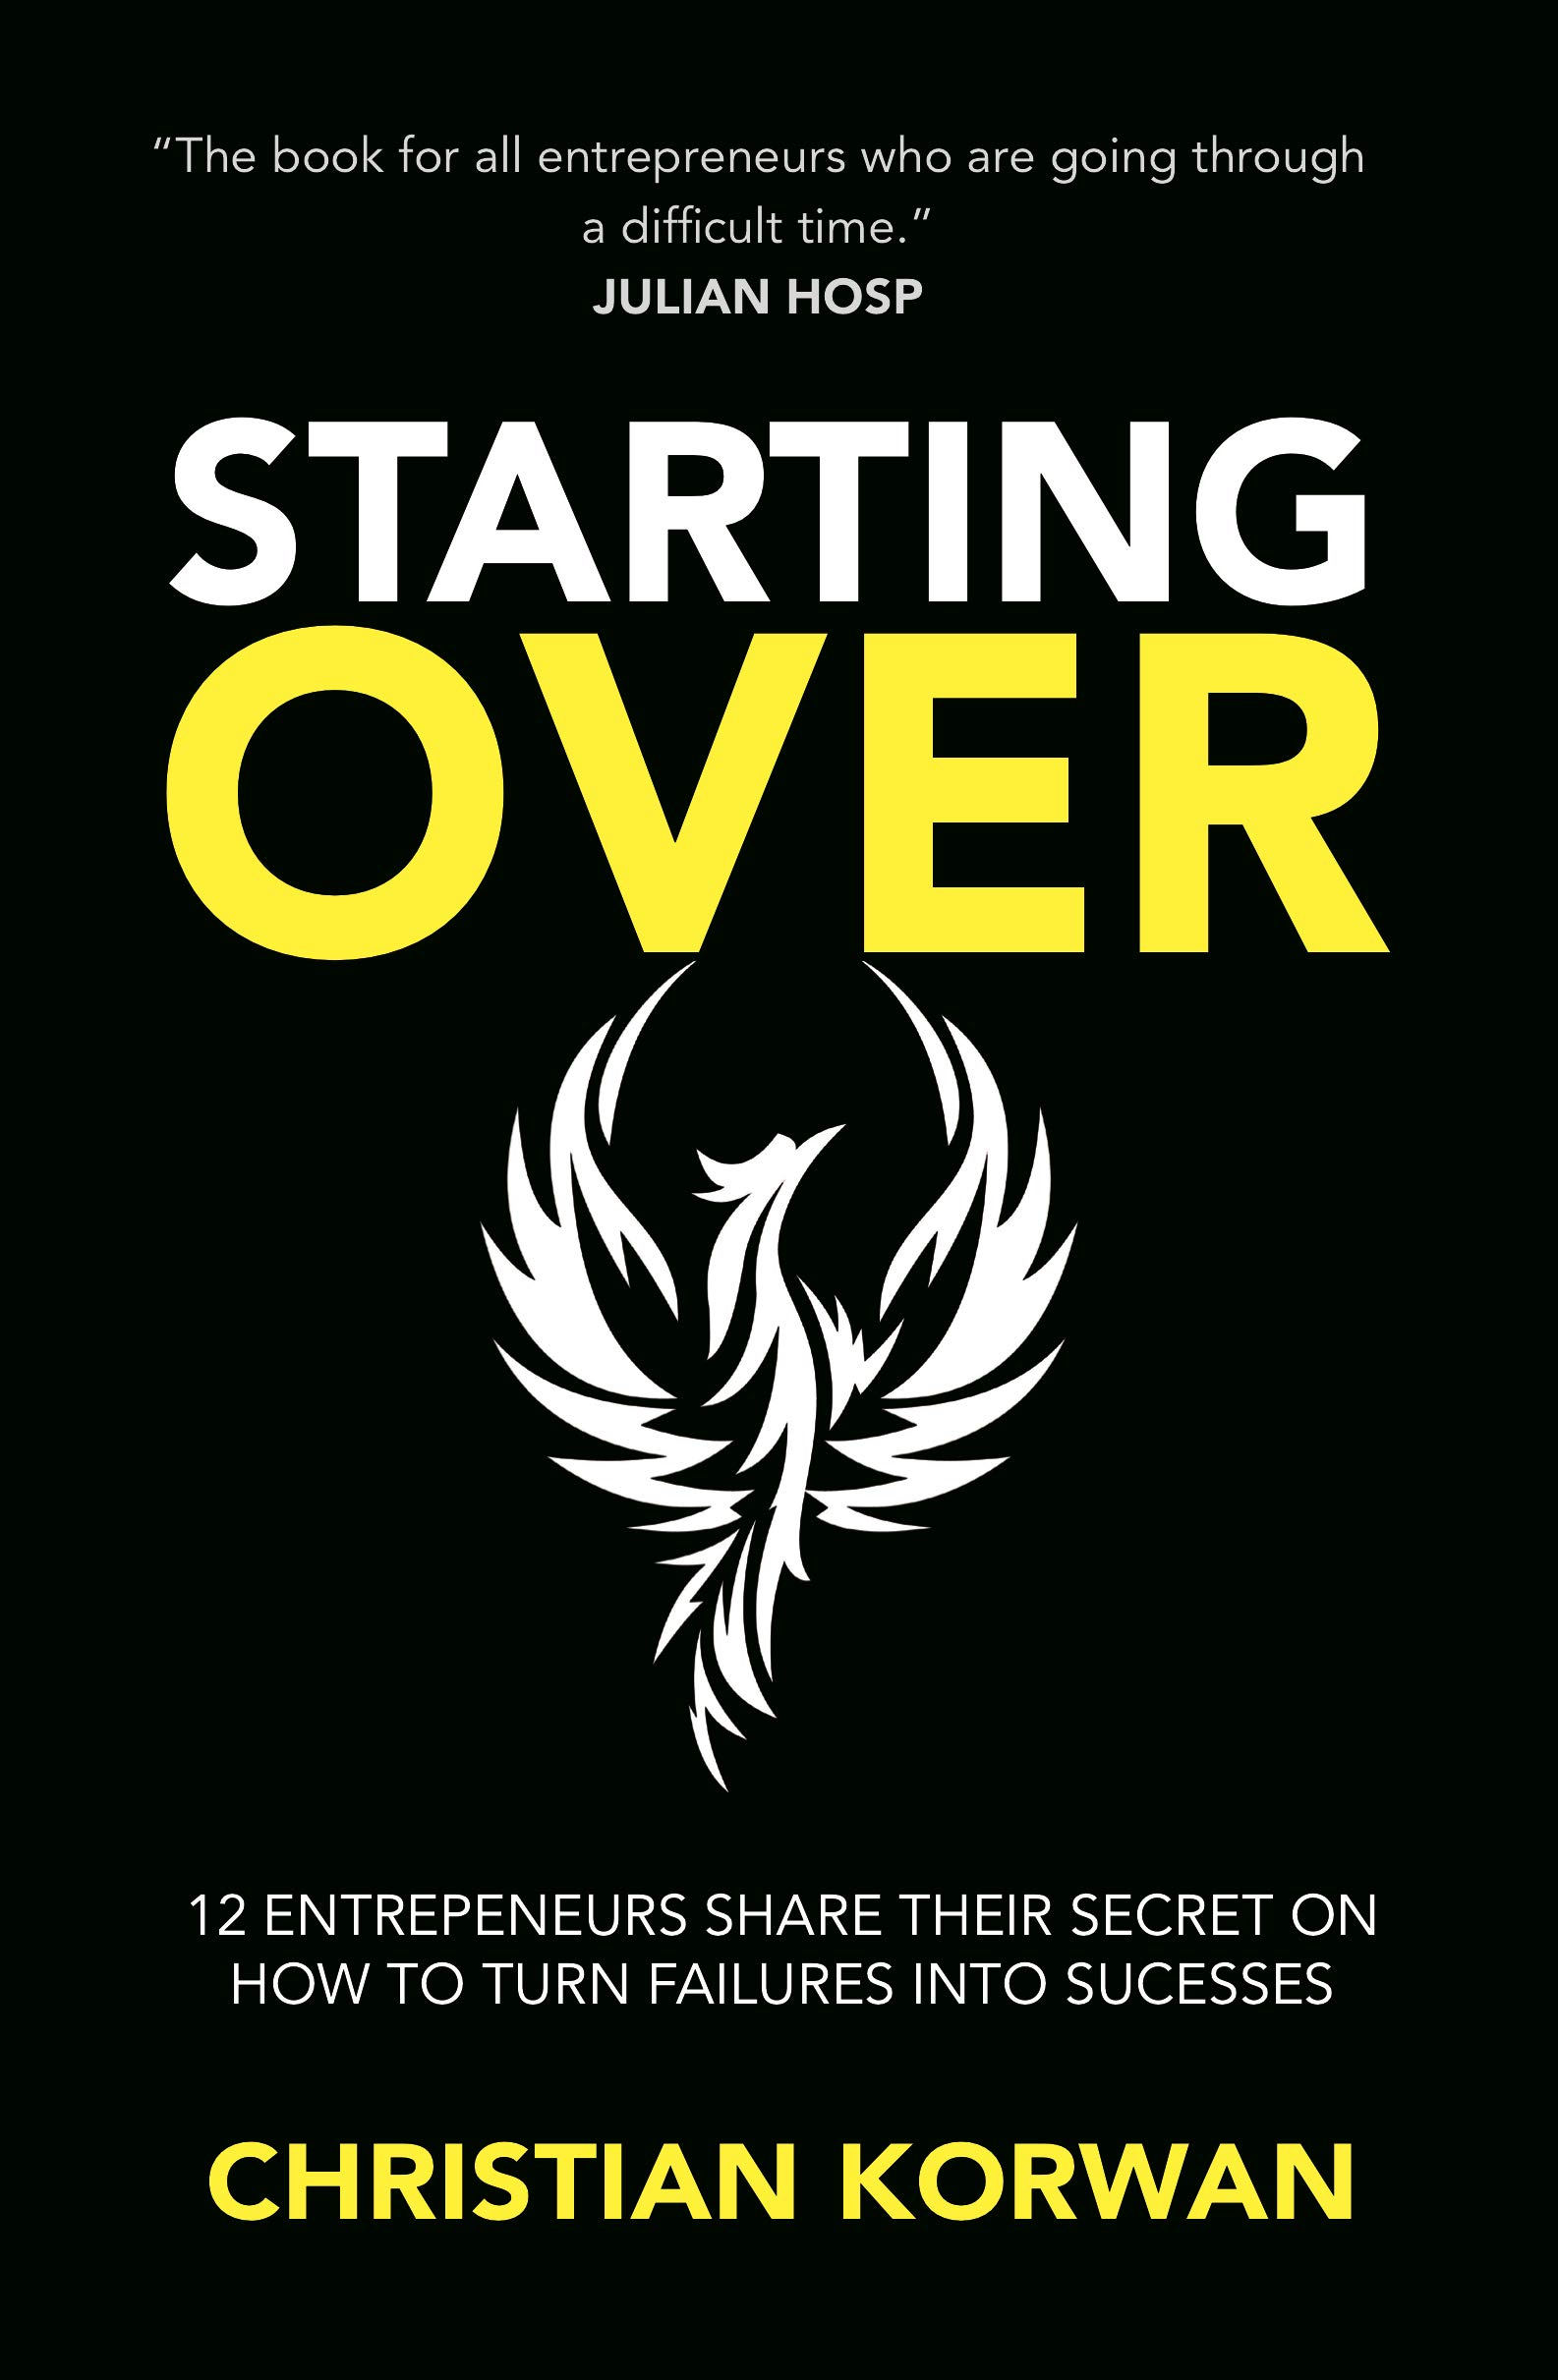 STARTING OVER: The successes and failures of 12 entrepreneurs like you